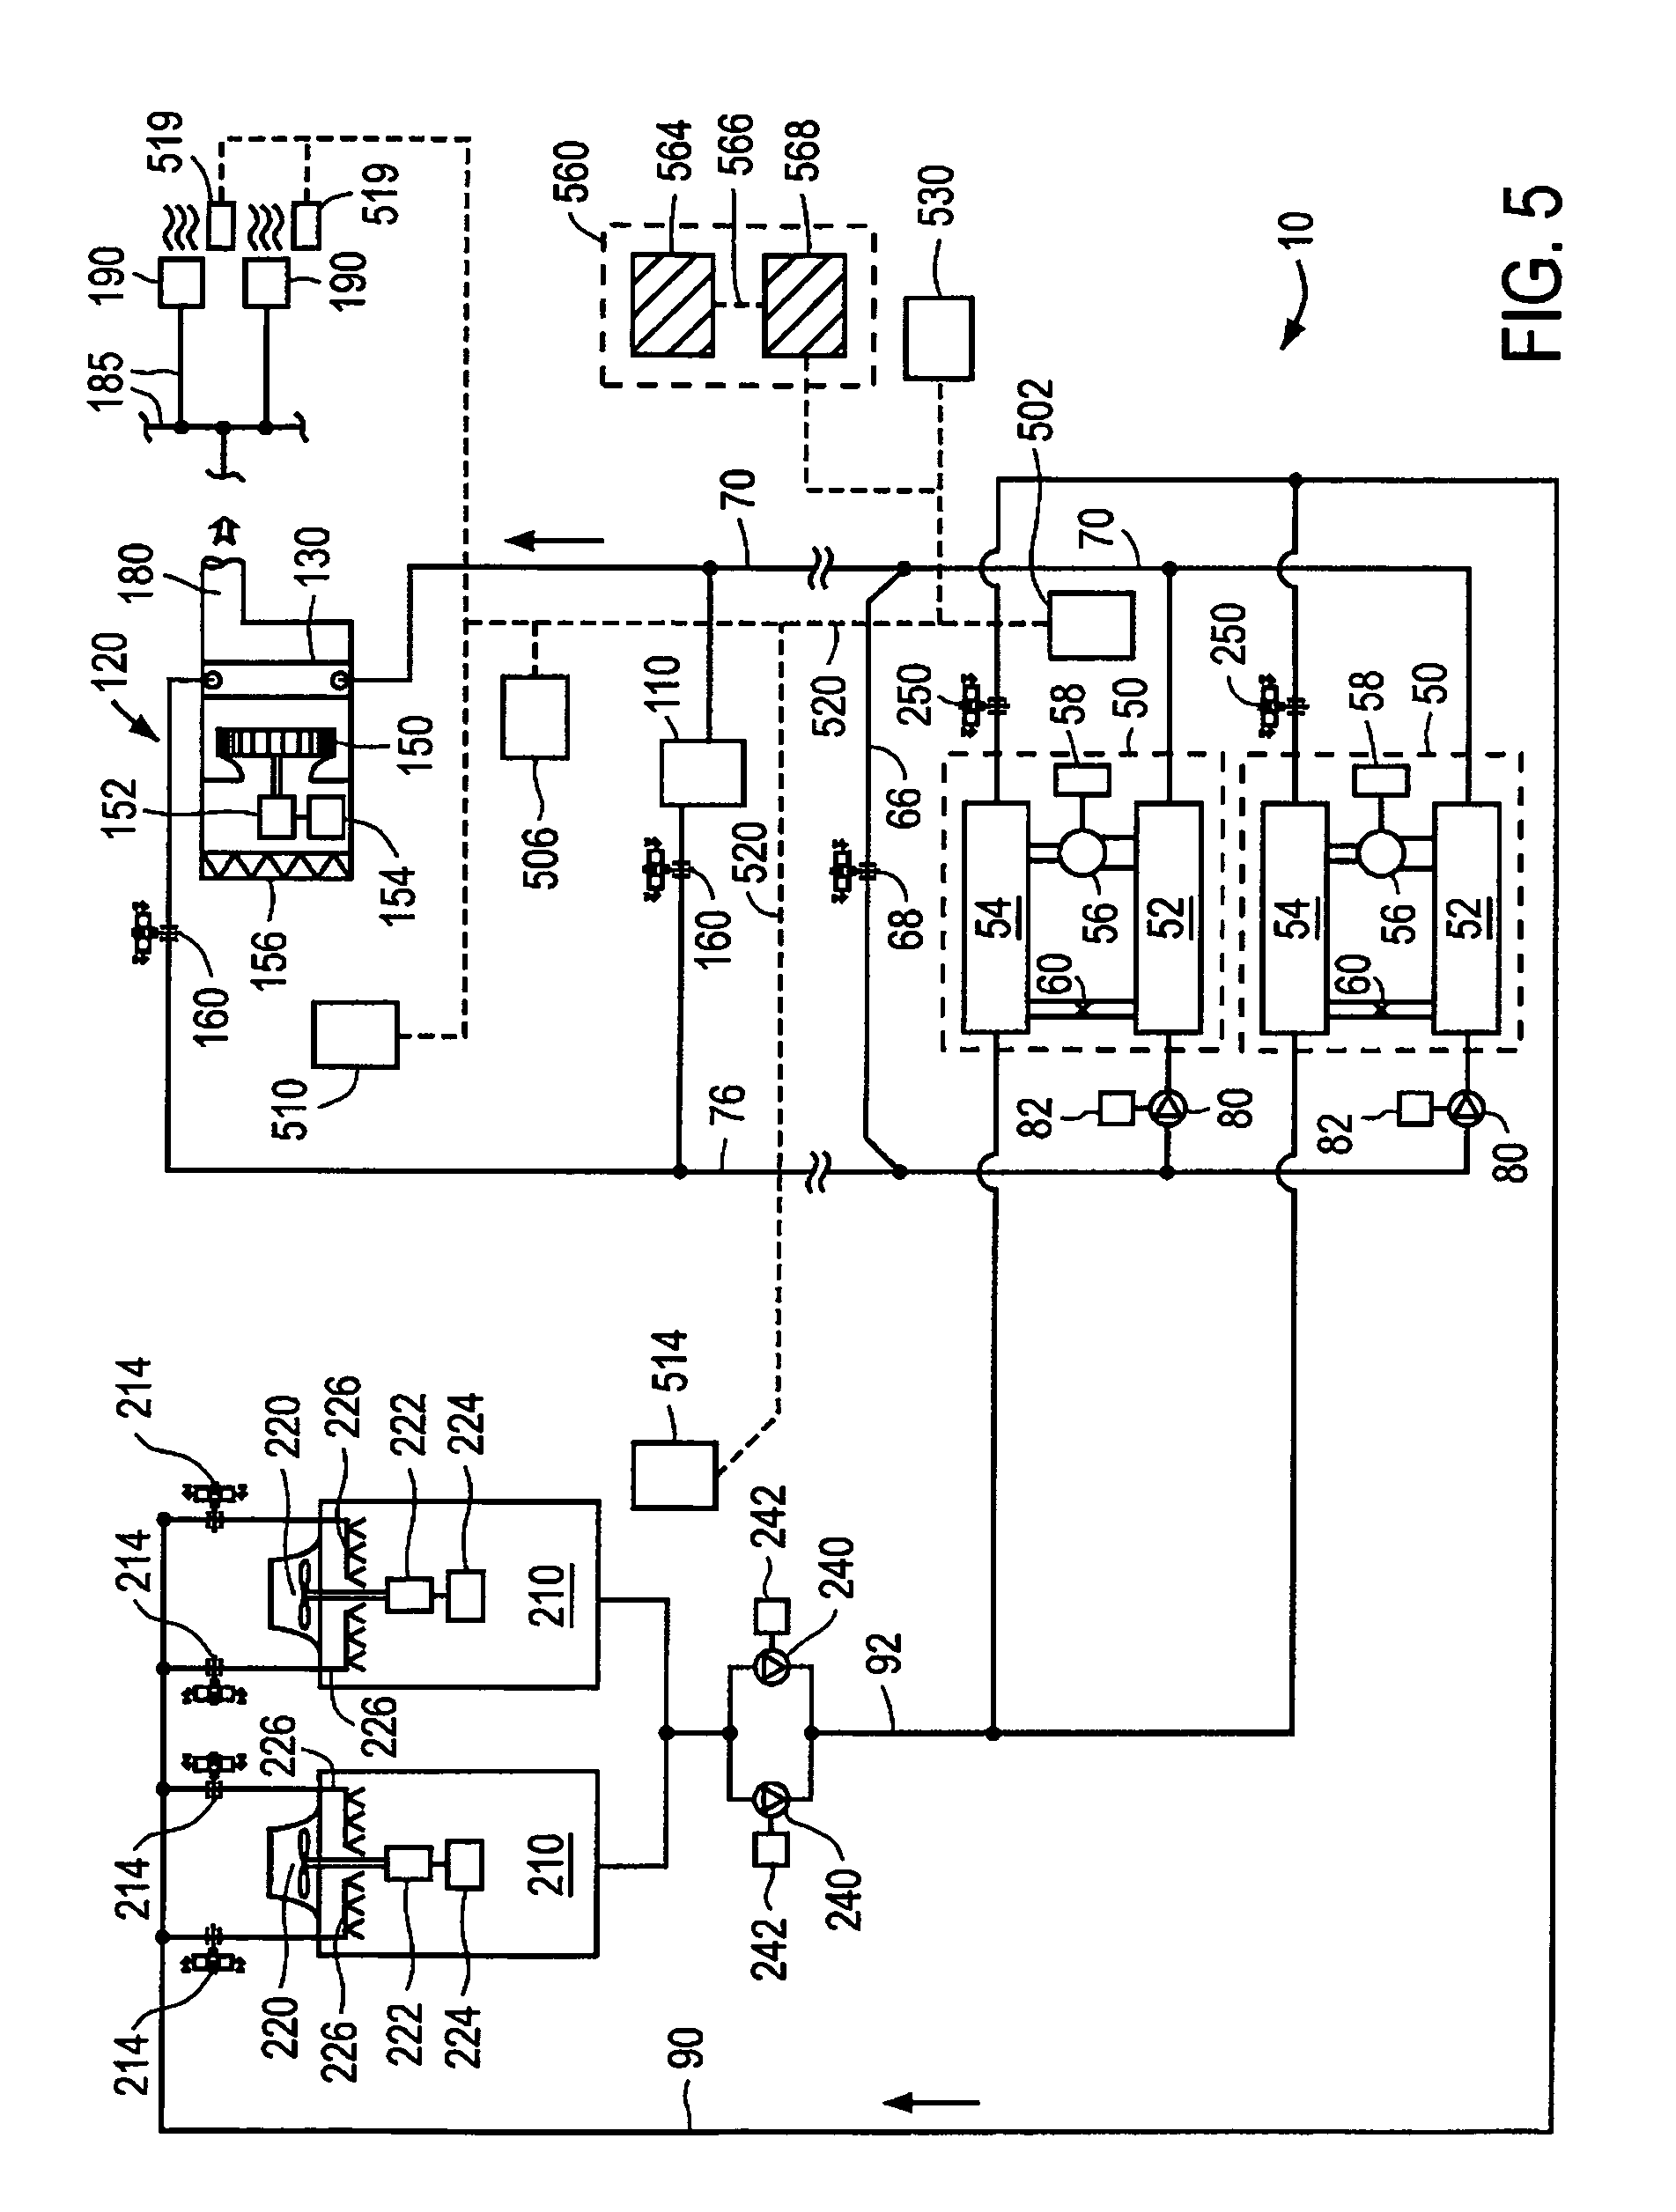 Optimized control system for cooling systems   Patents #3B3B3B